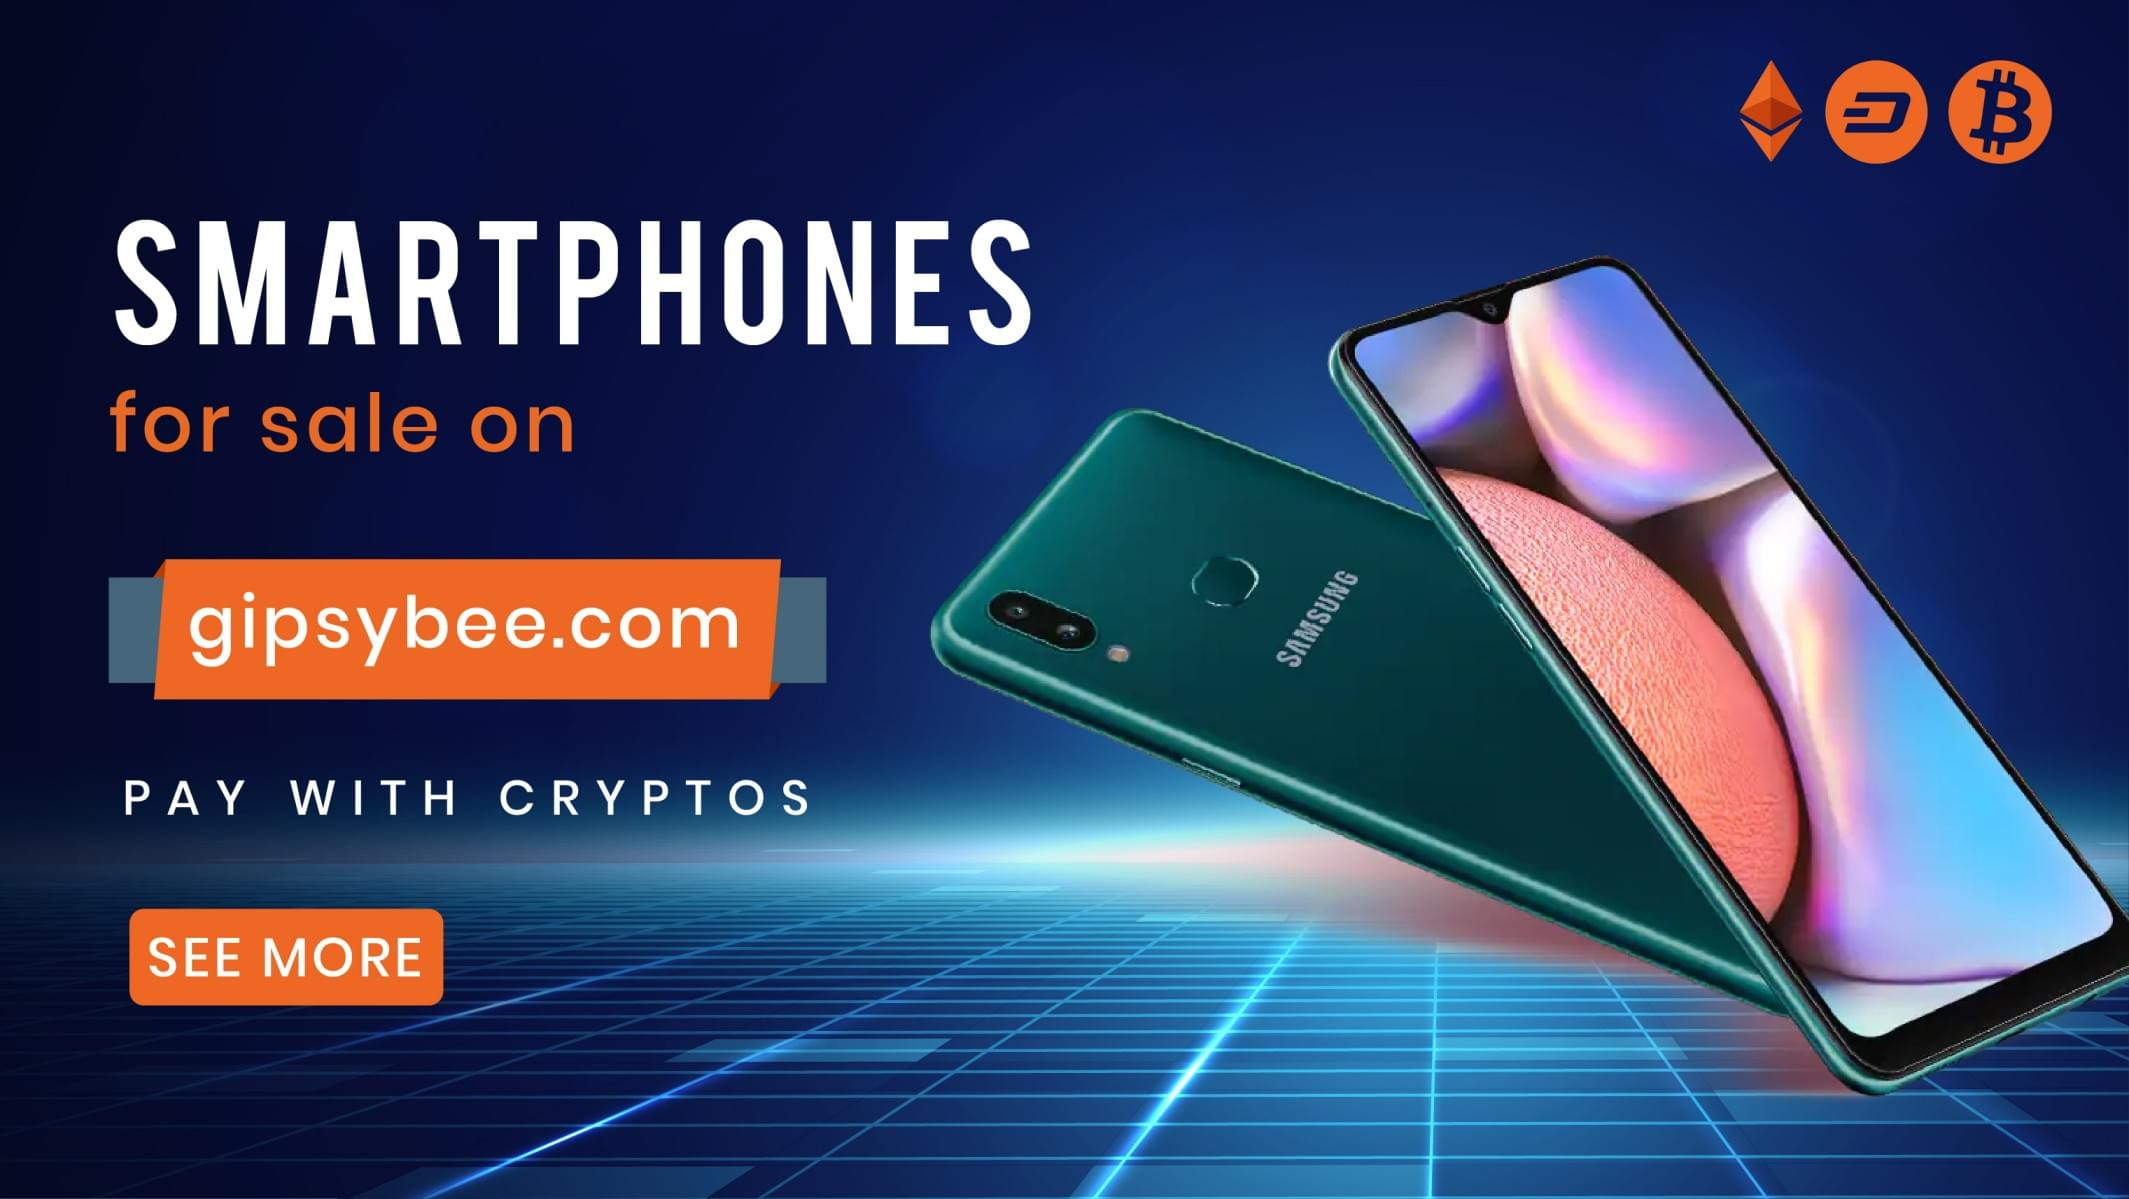 Buy Mobile Phones and accessories with Bitcoin, Ethereum, Litecoin, DASH, USDT, UTK on Gipsybee.com with FREE SHIPPING